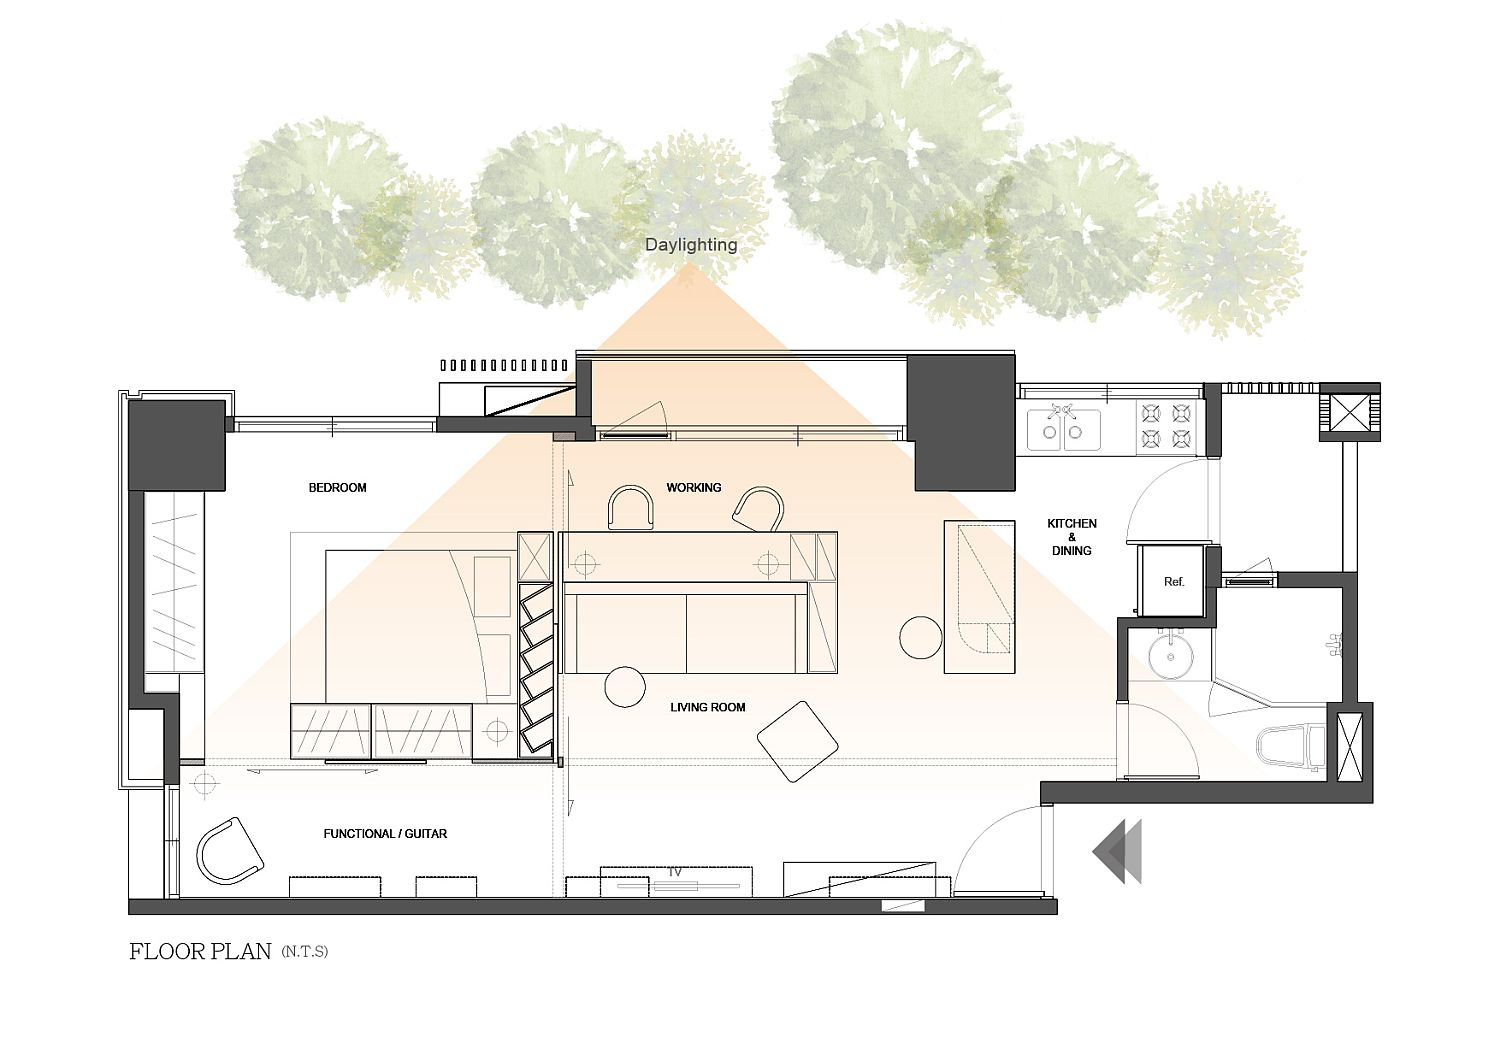 Floor-plan-of-contemporary-home-in-Taiwan-inspired-by-classic-Eichler-homes